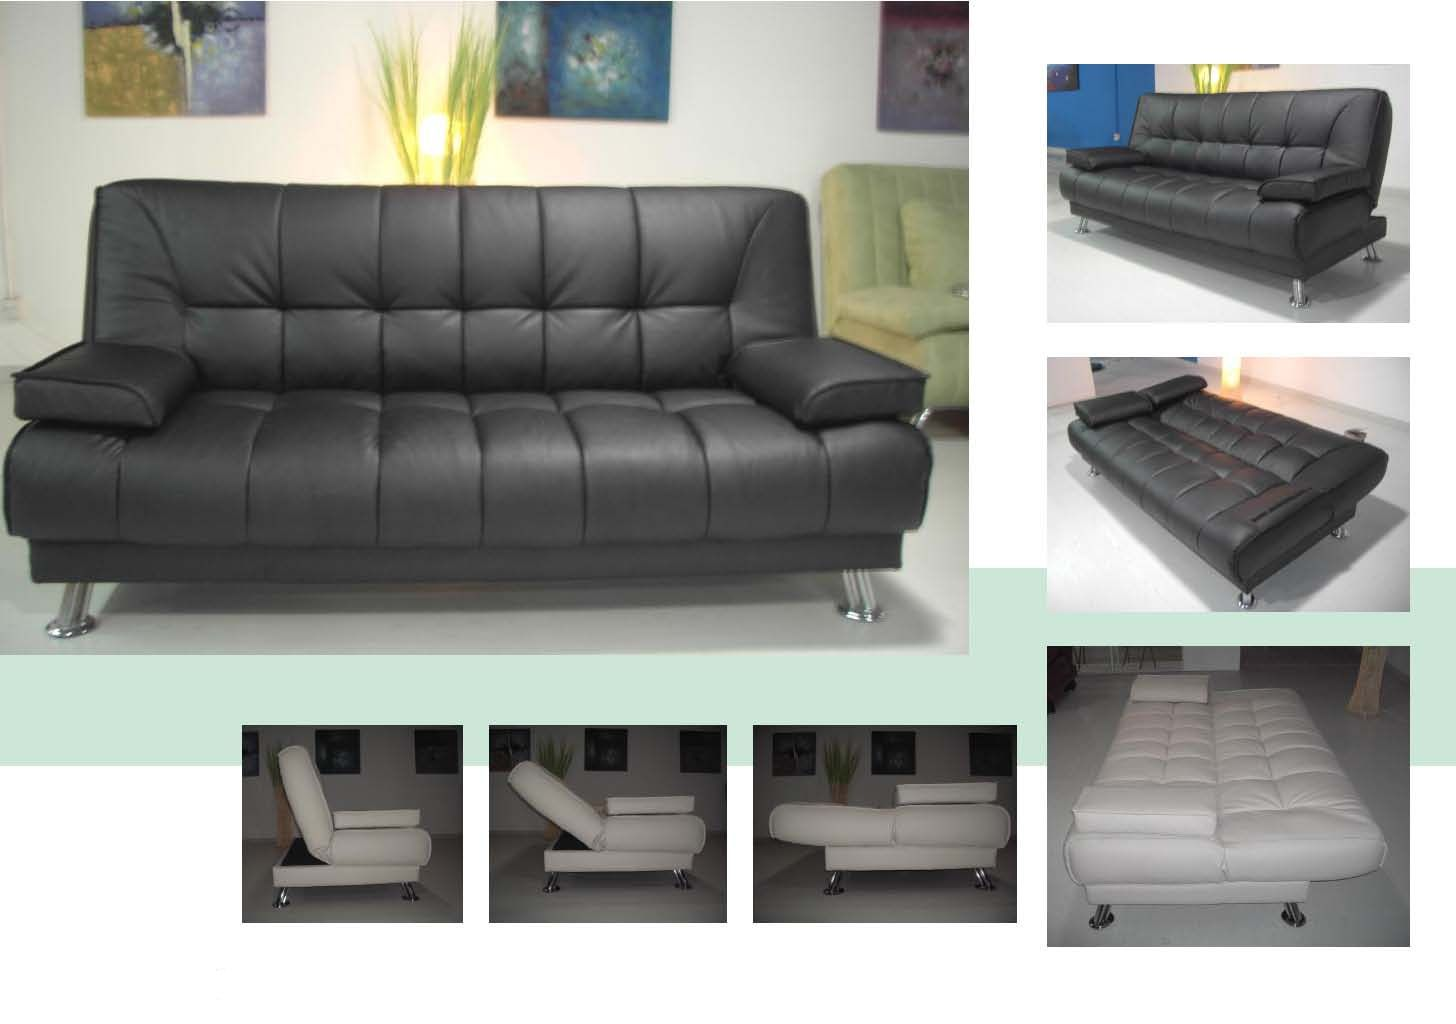 Awesome Modern Futon Sofa Unique 95 For Your Ideas With Http Sofascouch Com 900